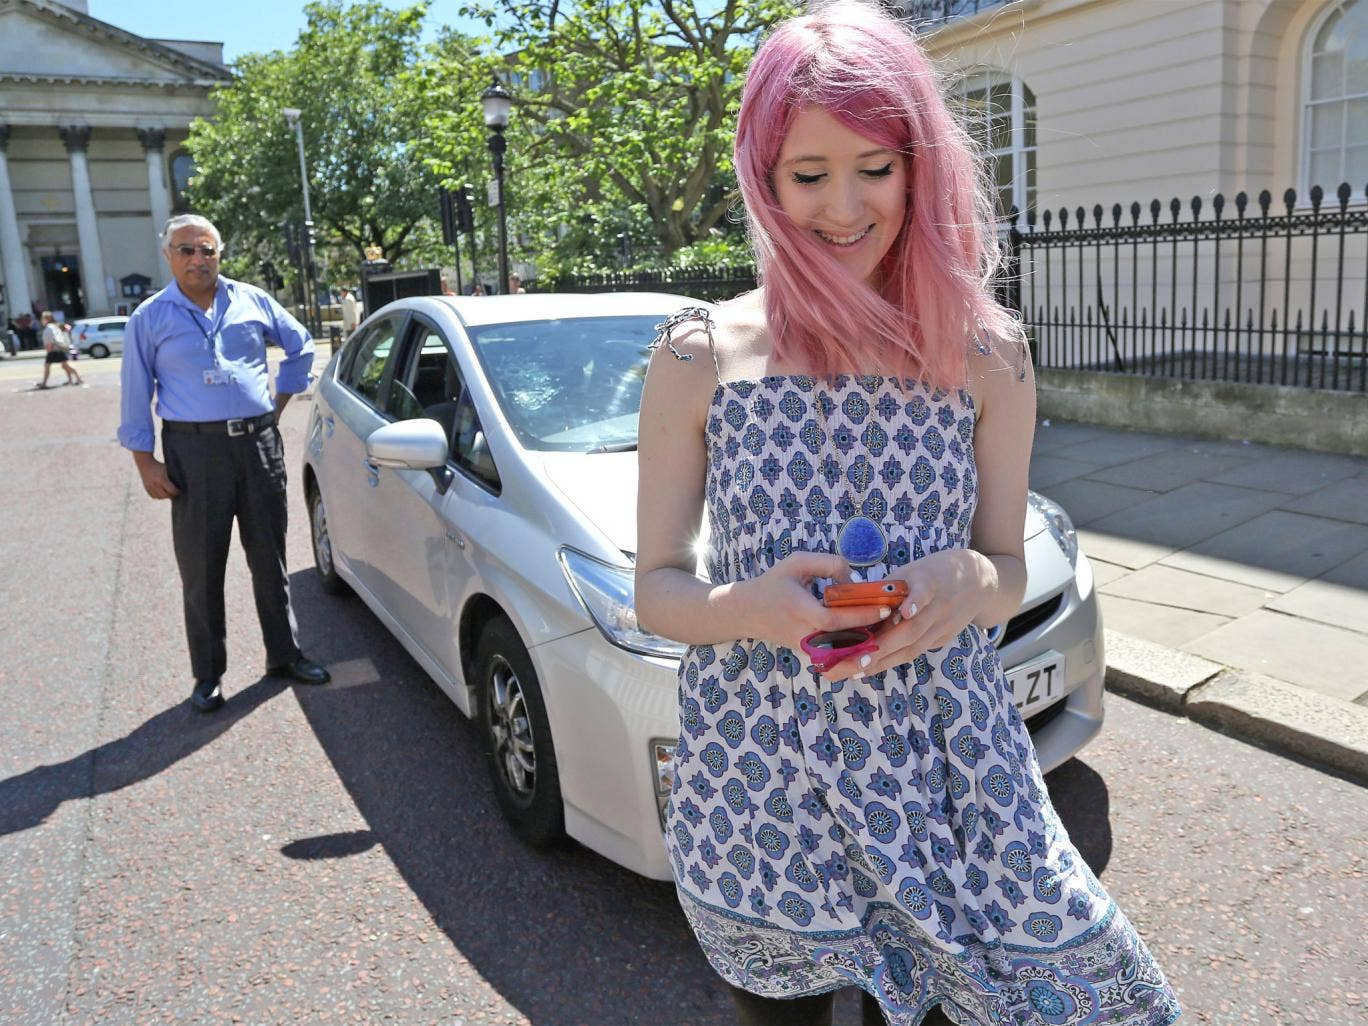 Chloe Hamilton summoned Uber driver Masood in six minutes, using the app on her smartphone